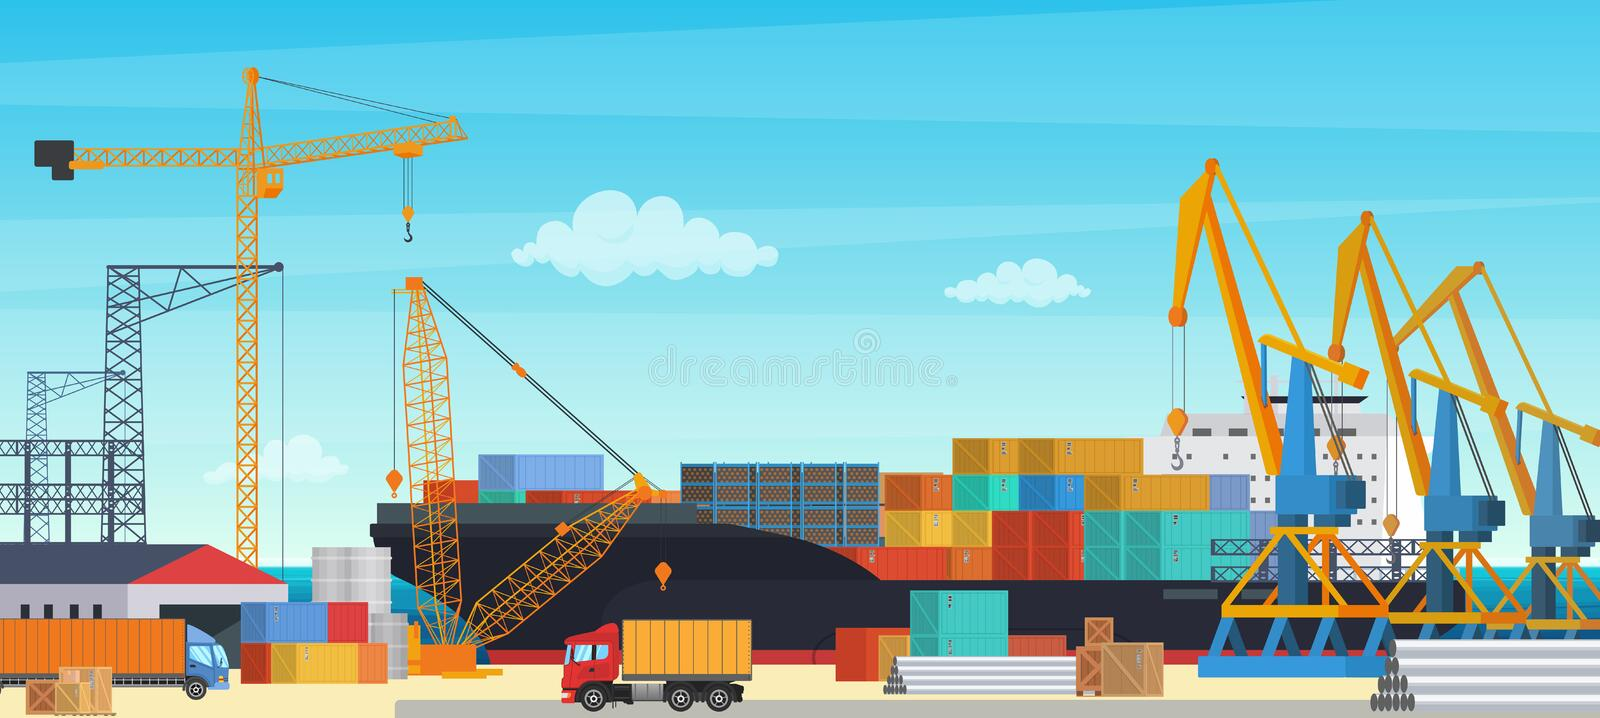 Logistics transportationt container ship with industrial crane import and export in shipping cargo harbor yard vector illustration